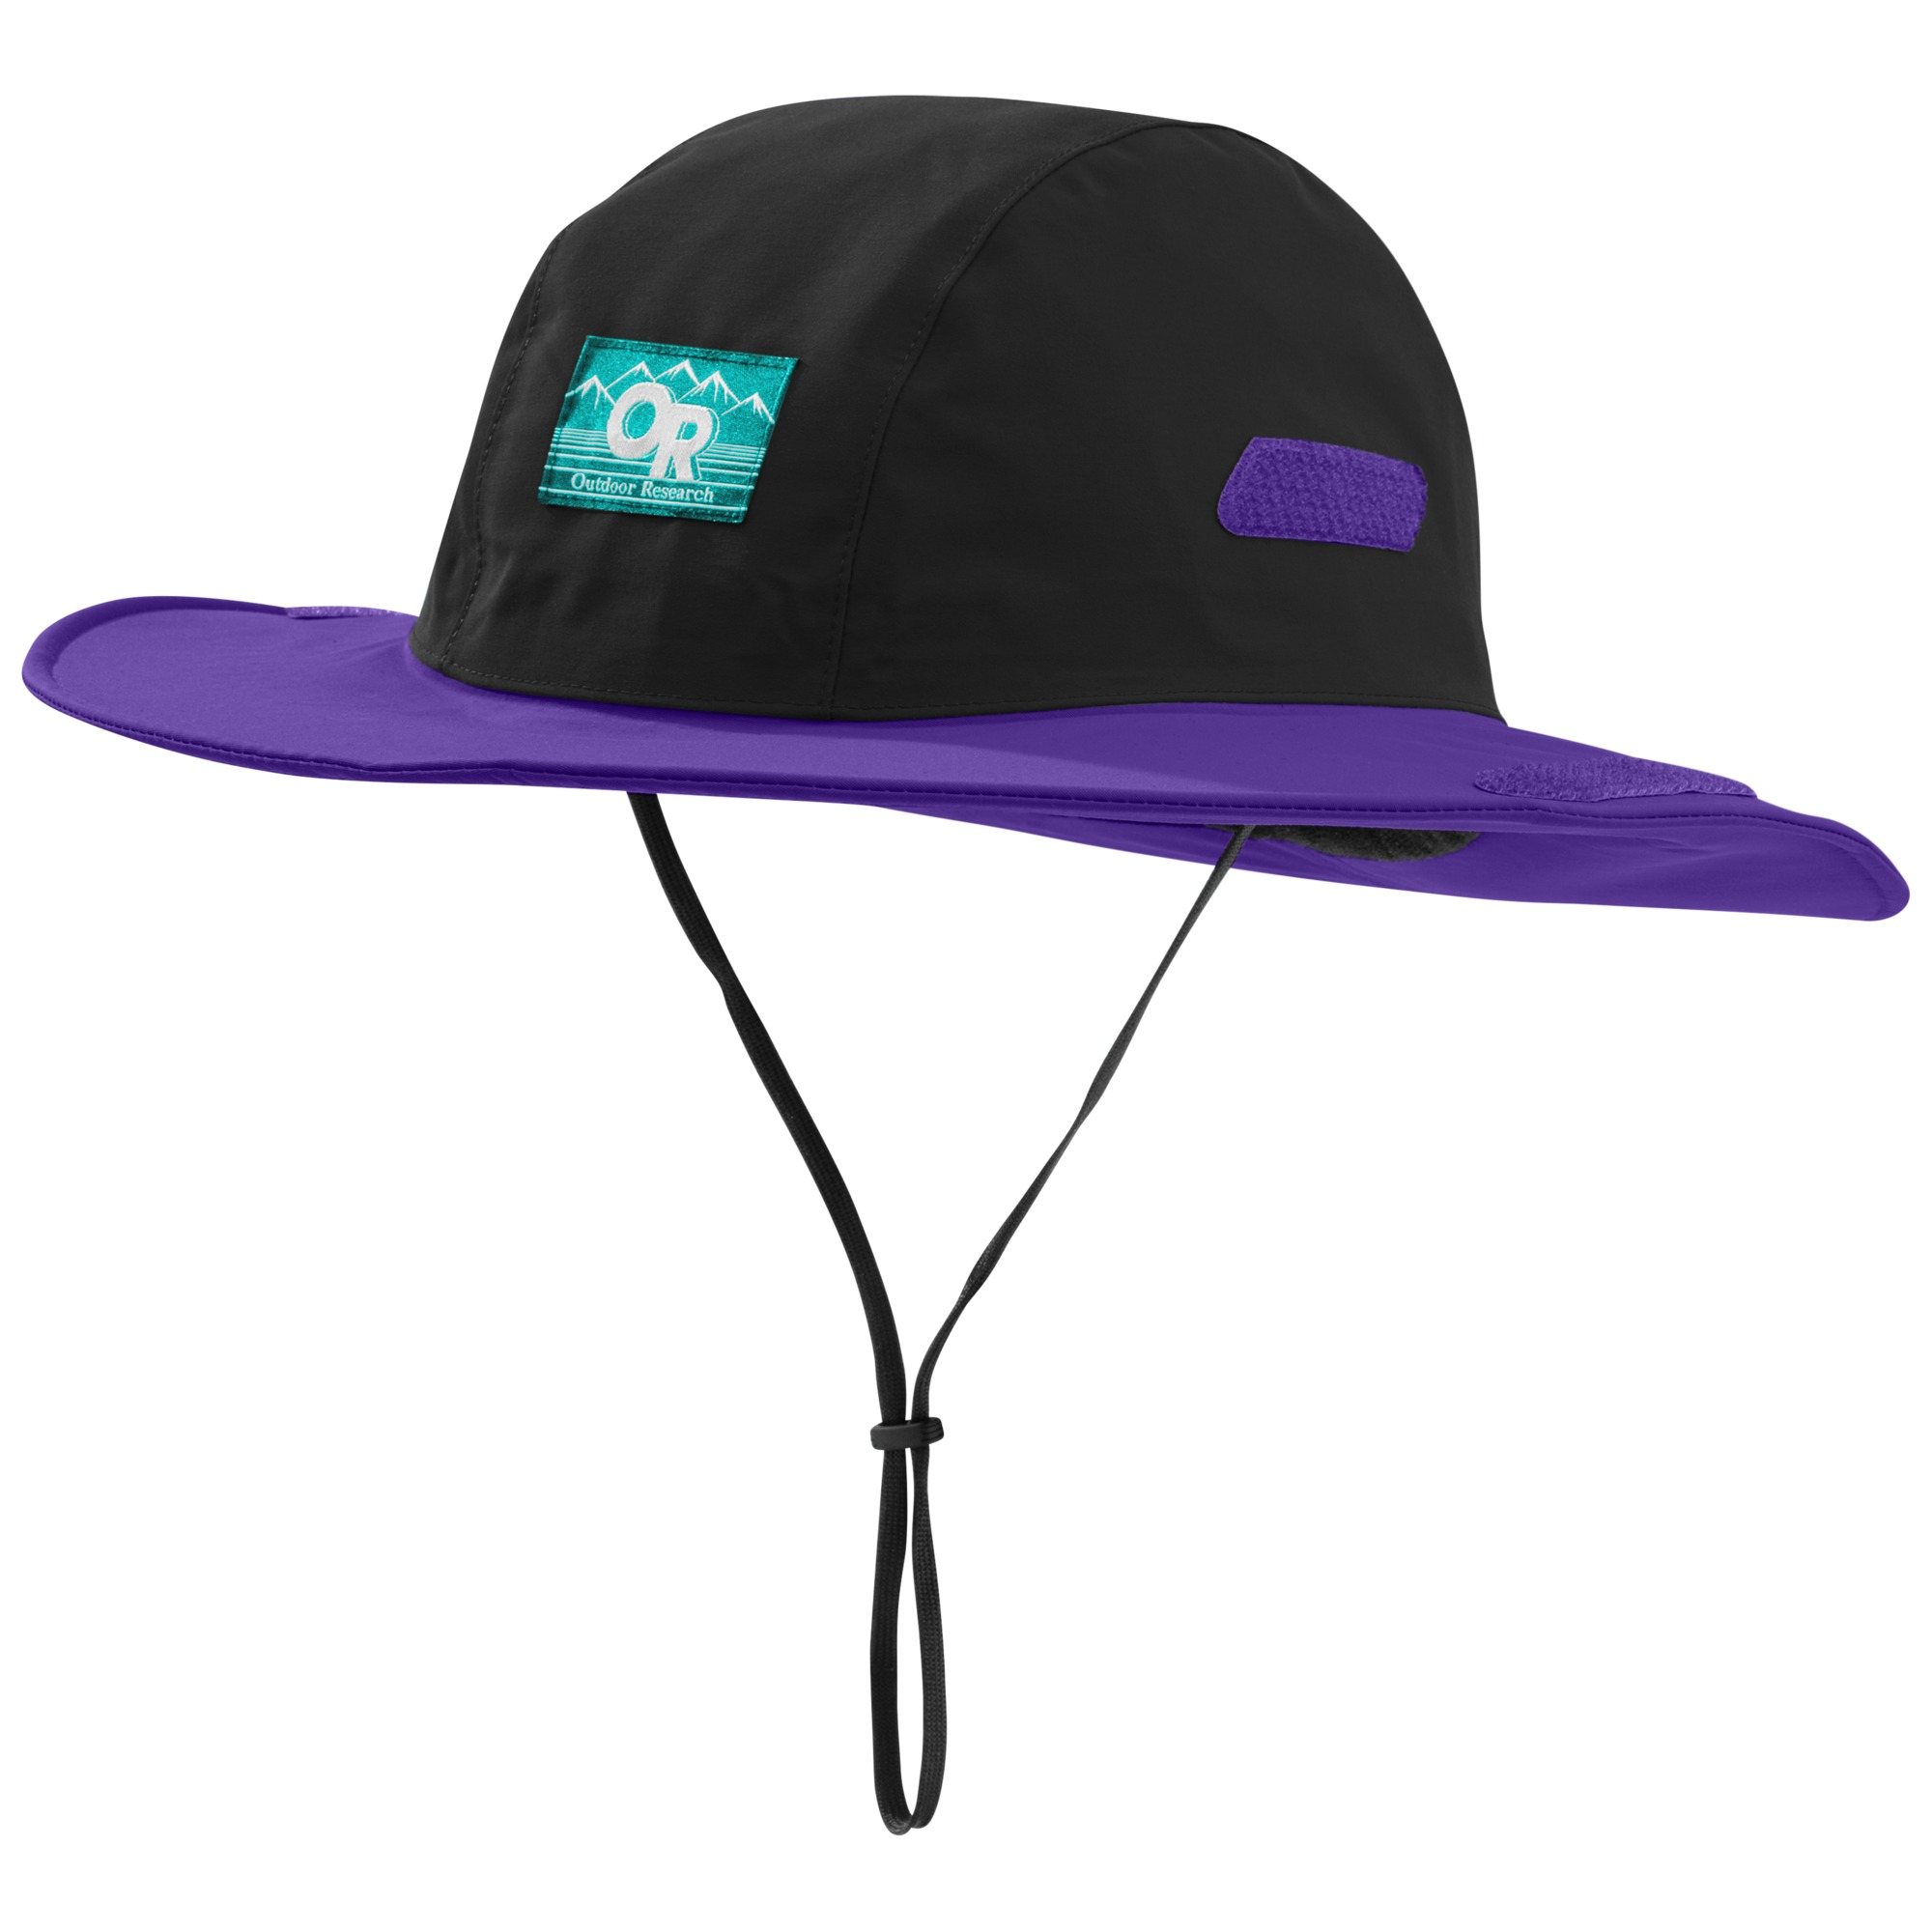 cc37dbafa43ed Retro Seattle Sombrero - black purple rain